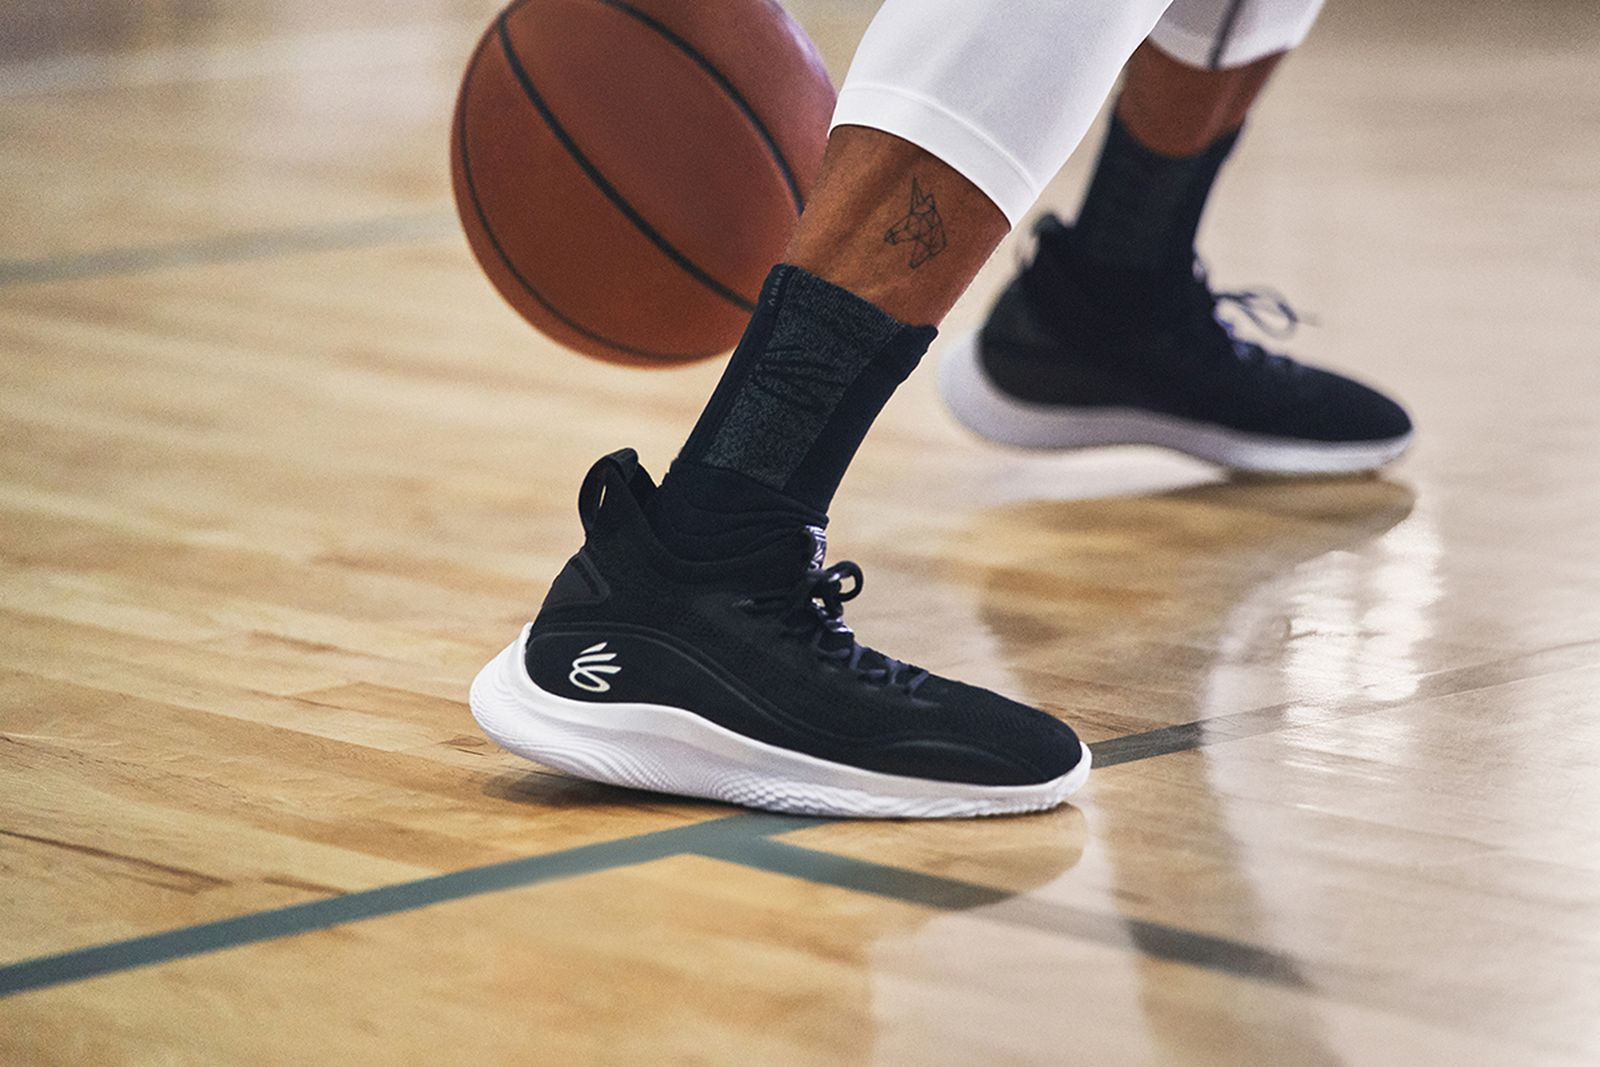 curry-brand-curry-flow-8-release-date-price-06